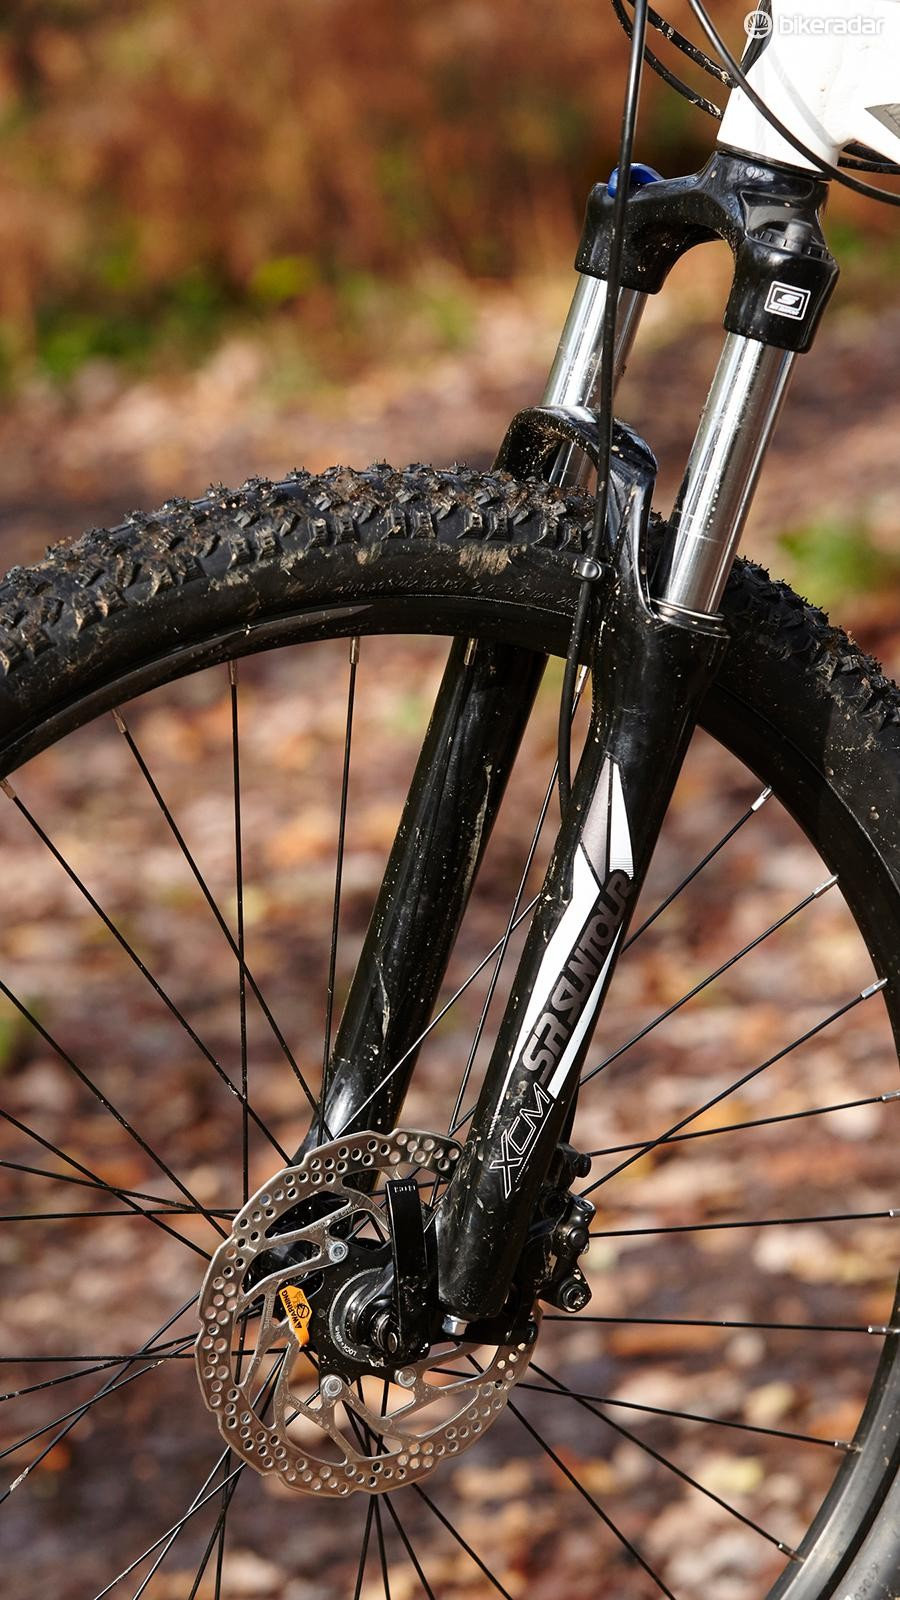 3f8ed6fcd6e Suntour's journeyman XCM fork performed acceptably on our test machine –  though Kenda's Slant Six treads